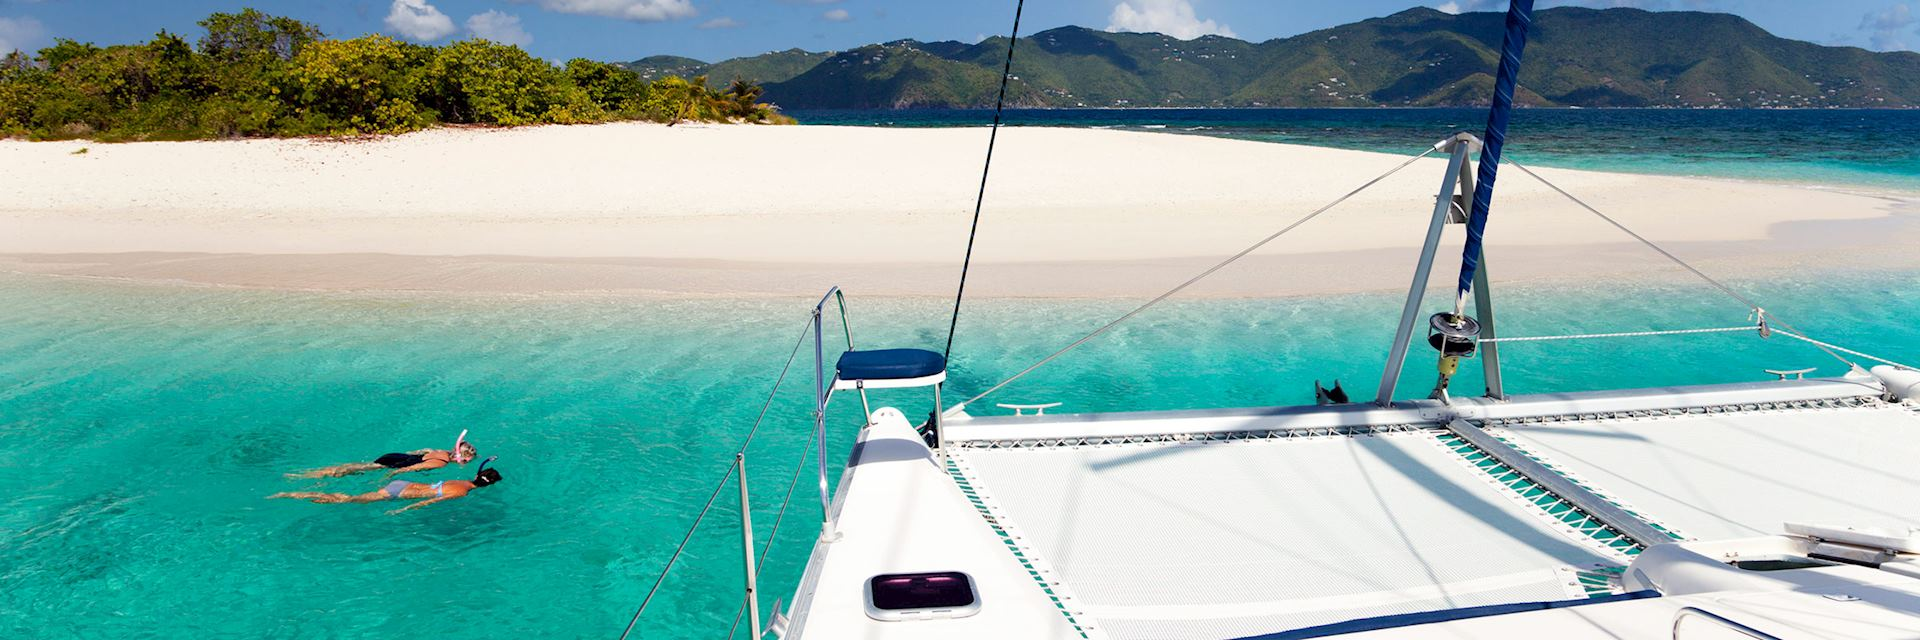 Explore the British Virgin Islands on a privately crewed yacht